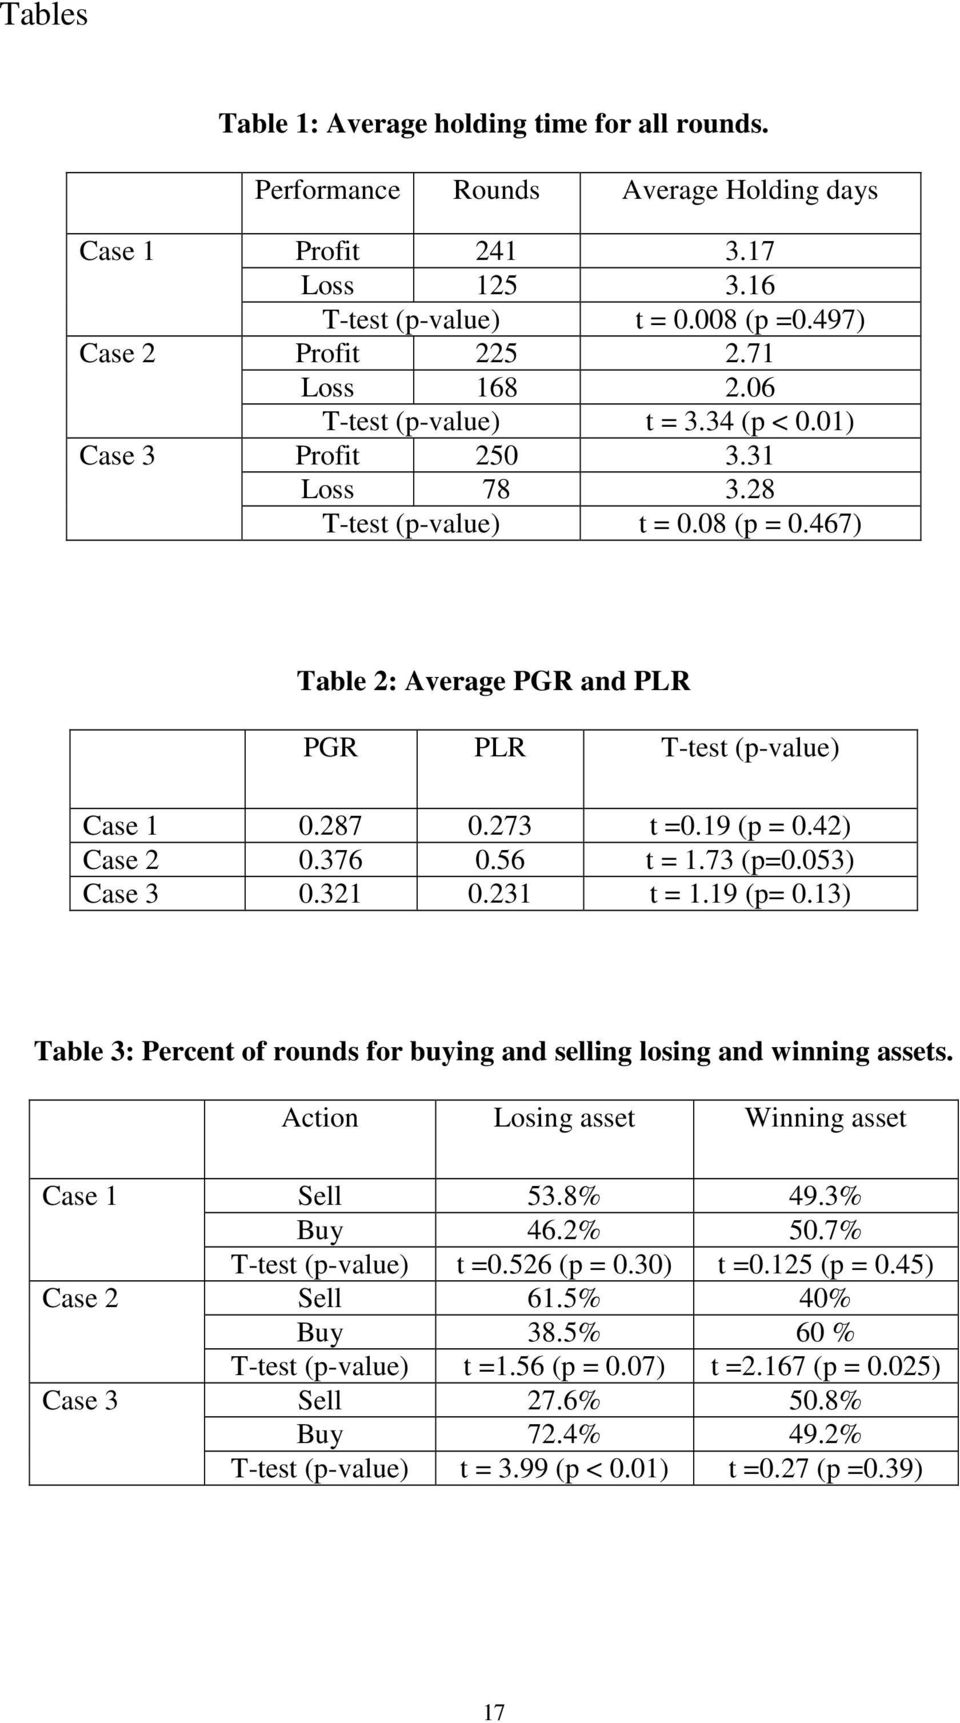 19 (p = 0.42) Case 2 0.376 0.56 t = 1.73 (p=0.053) Case 3 0.321 0.231 t = 1.19 (p= 0.13) Table 3: Percent of rounds for buying and selling losing and winning assets.